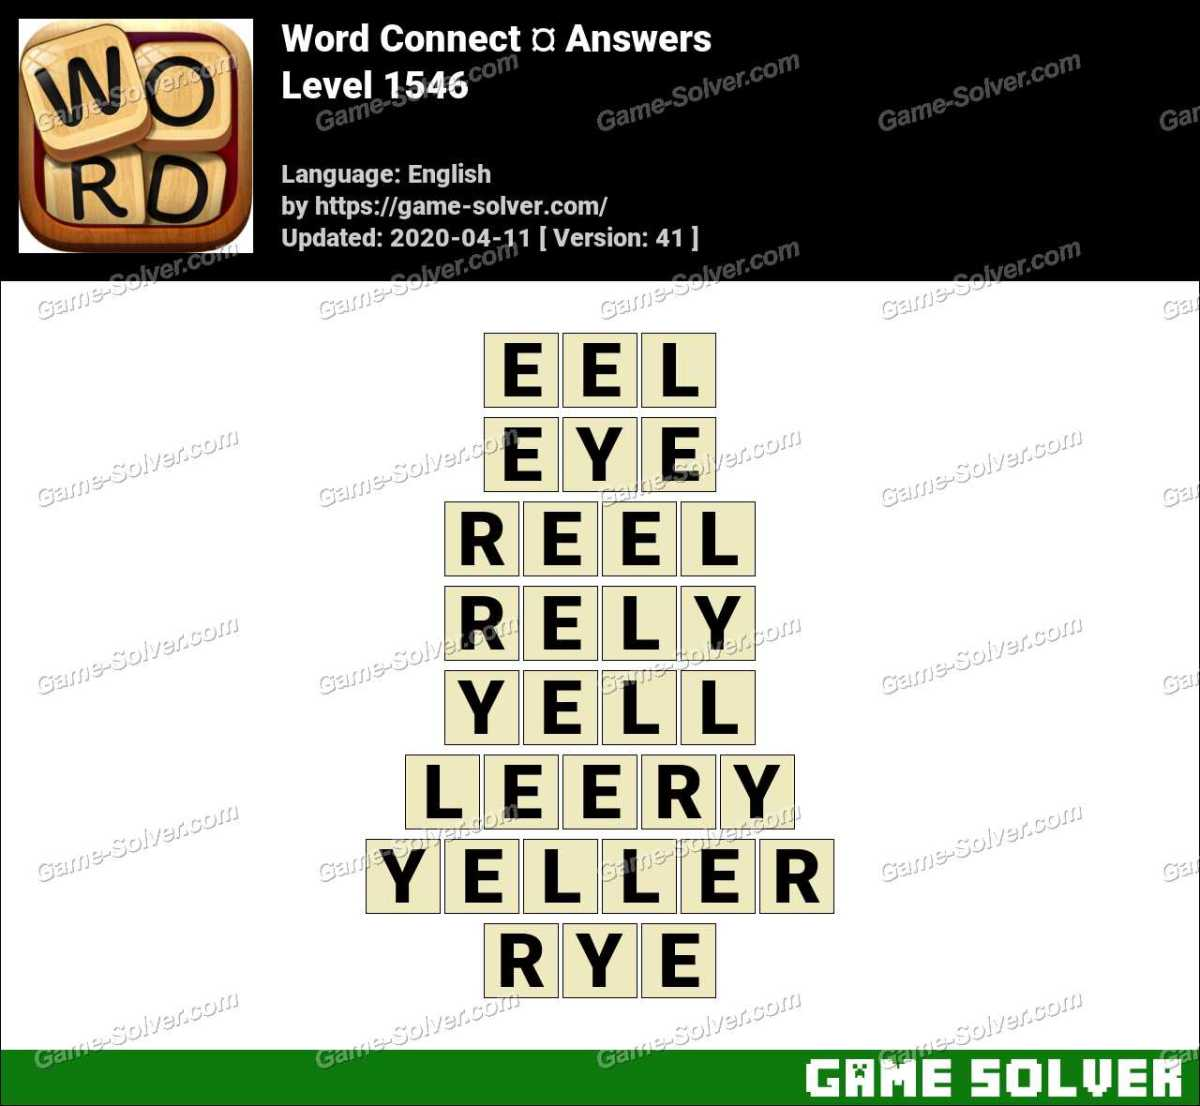 Word Connect Level 1546 Answers